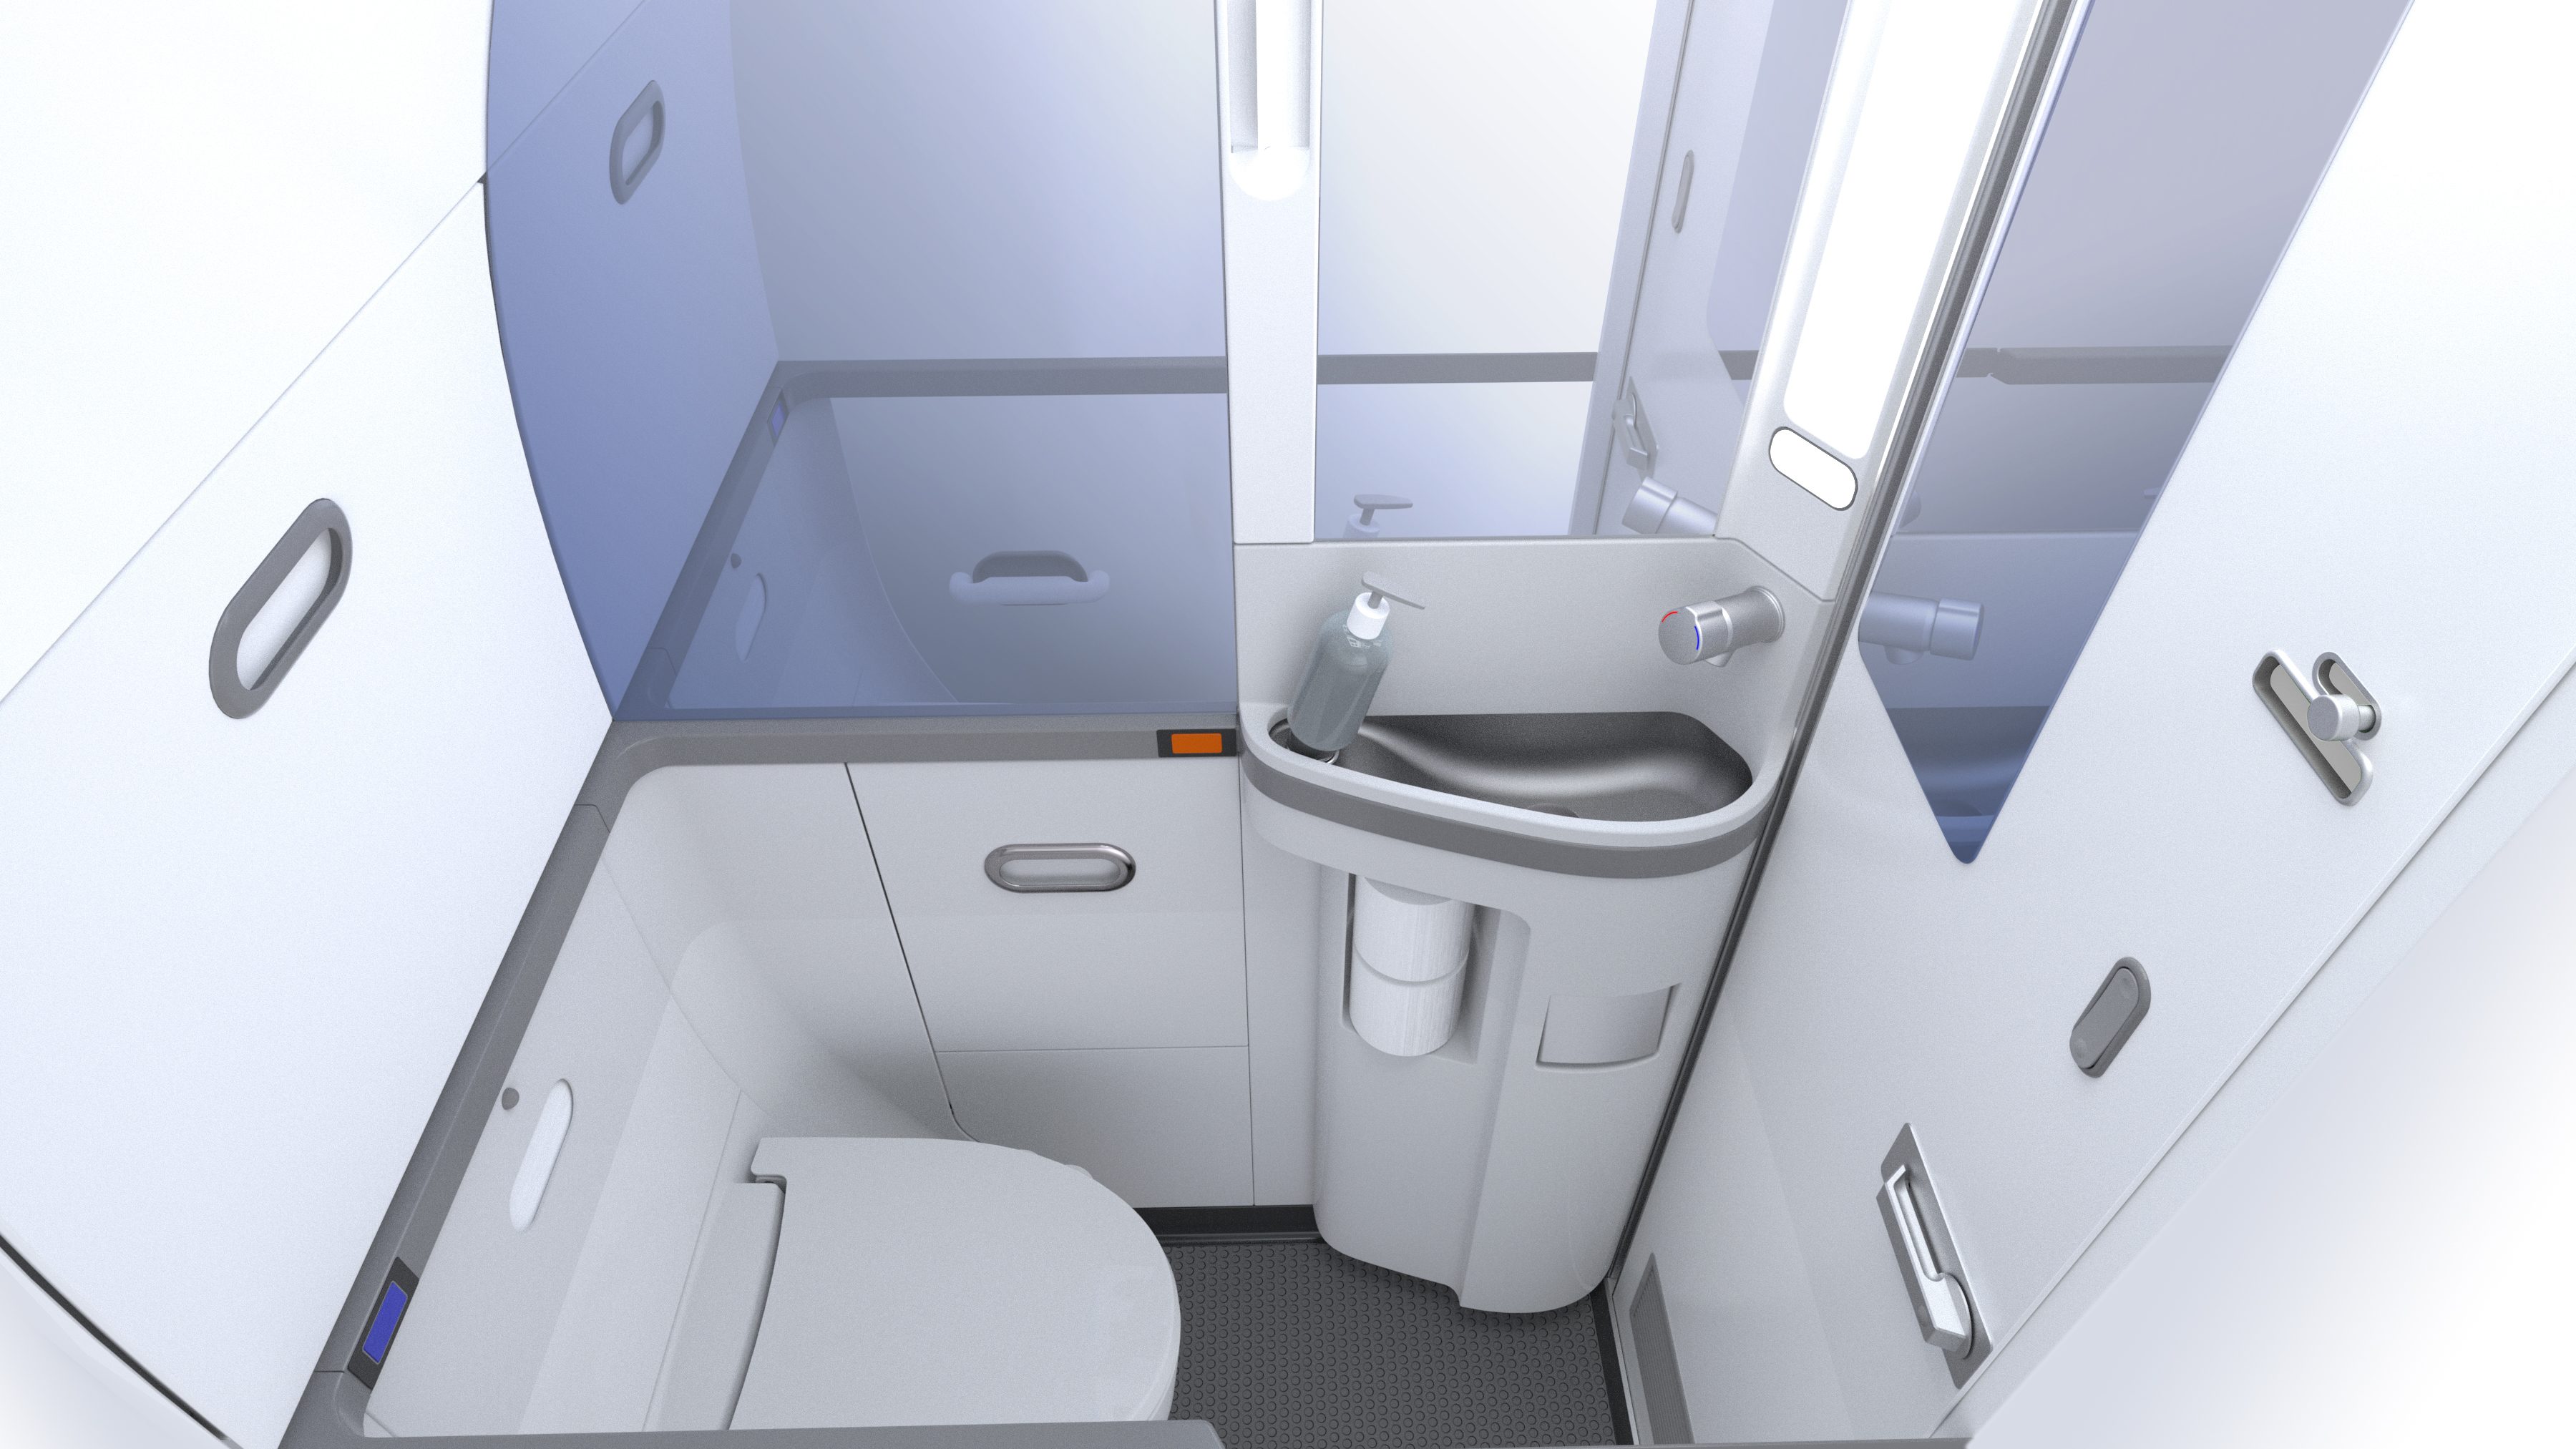 Toilet Design 737 Advanced Lavatory Aircraft Lavatories Rockwell Collins